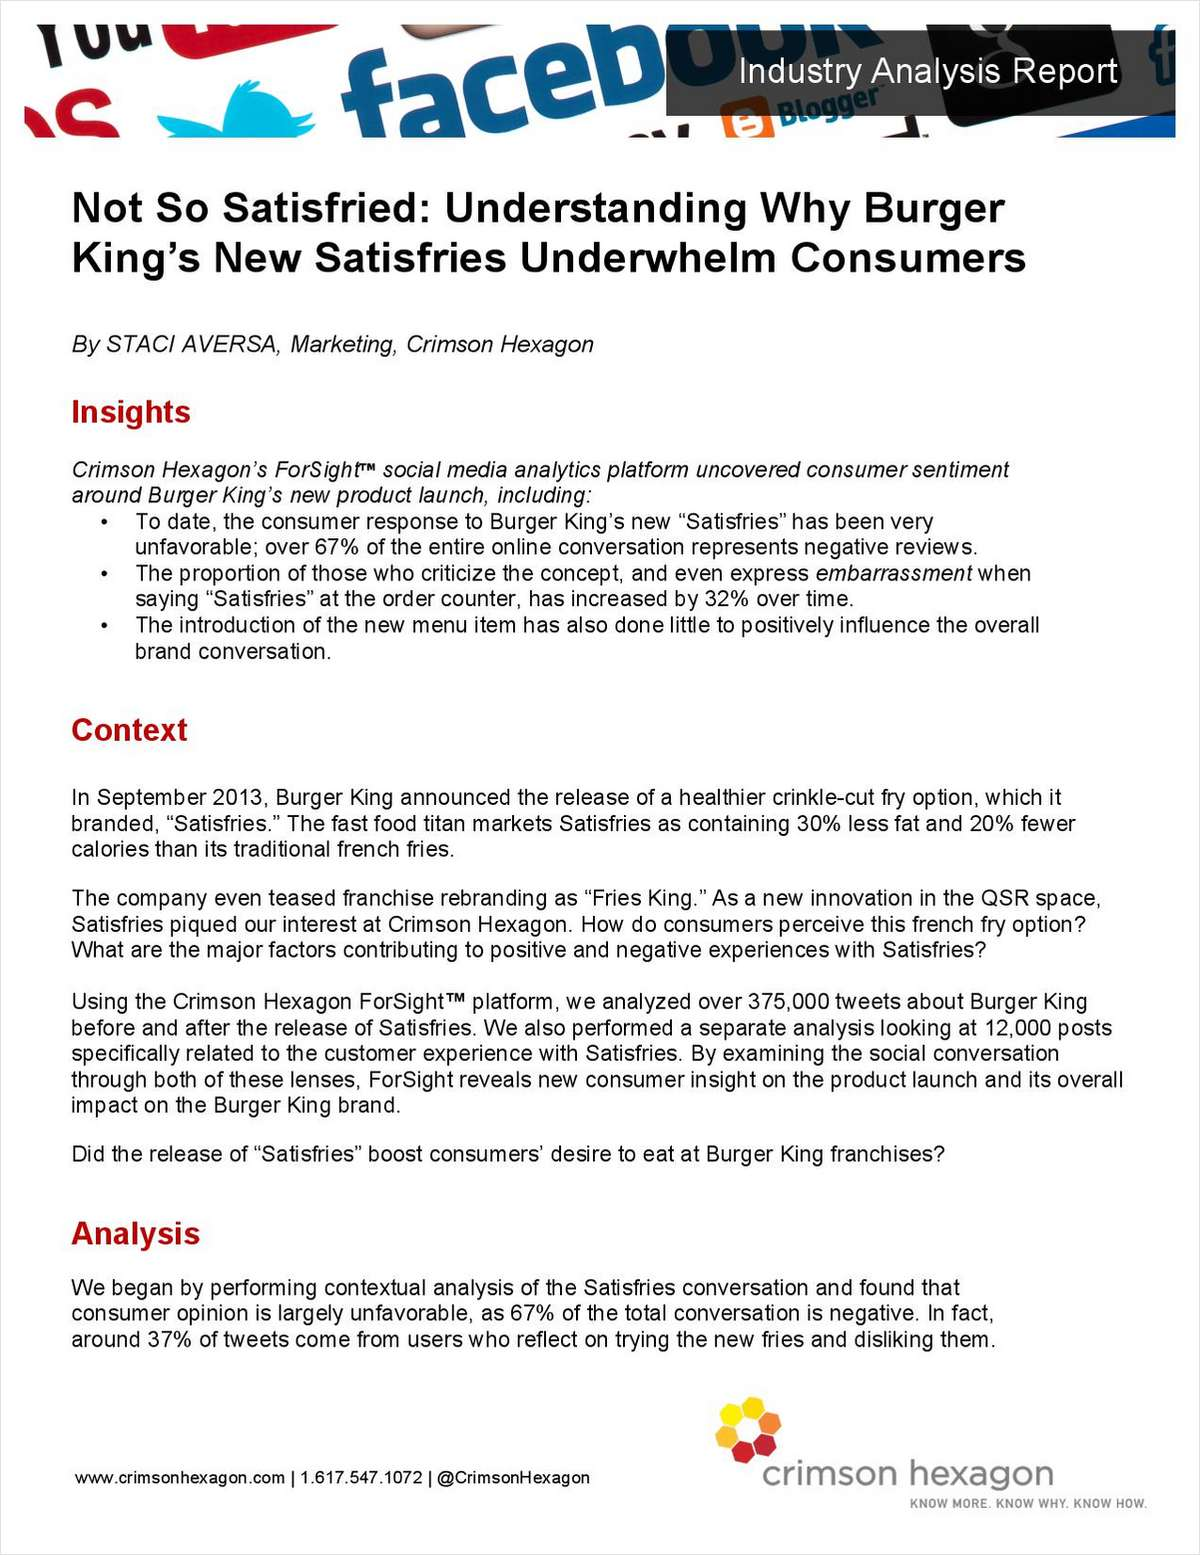 Not So Satisfried: Understanding Why Burger King's New Satisfries Underwhelm Consumers